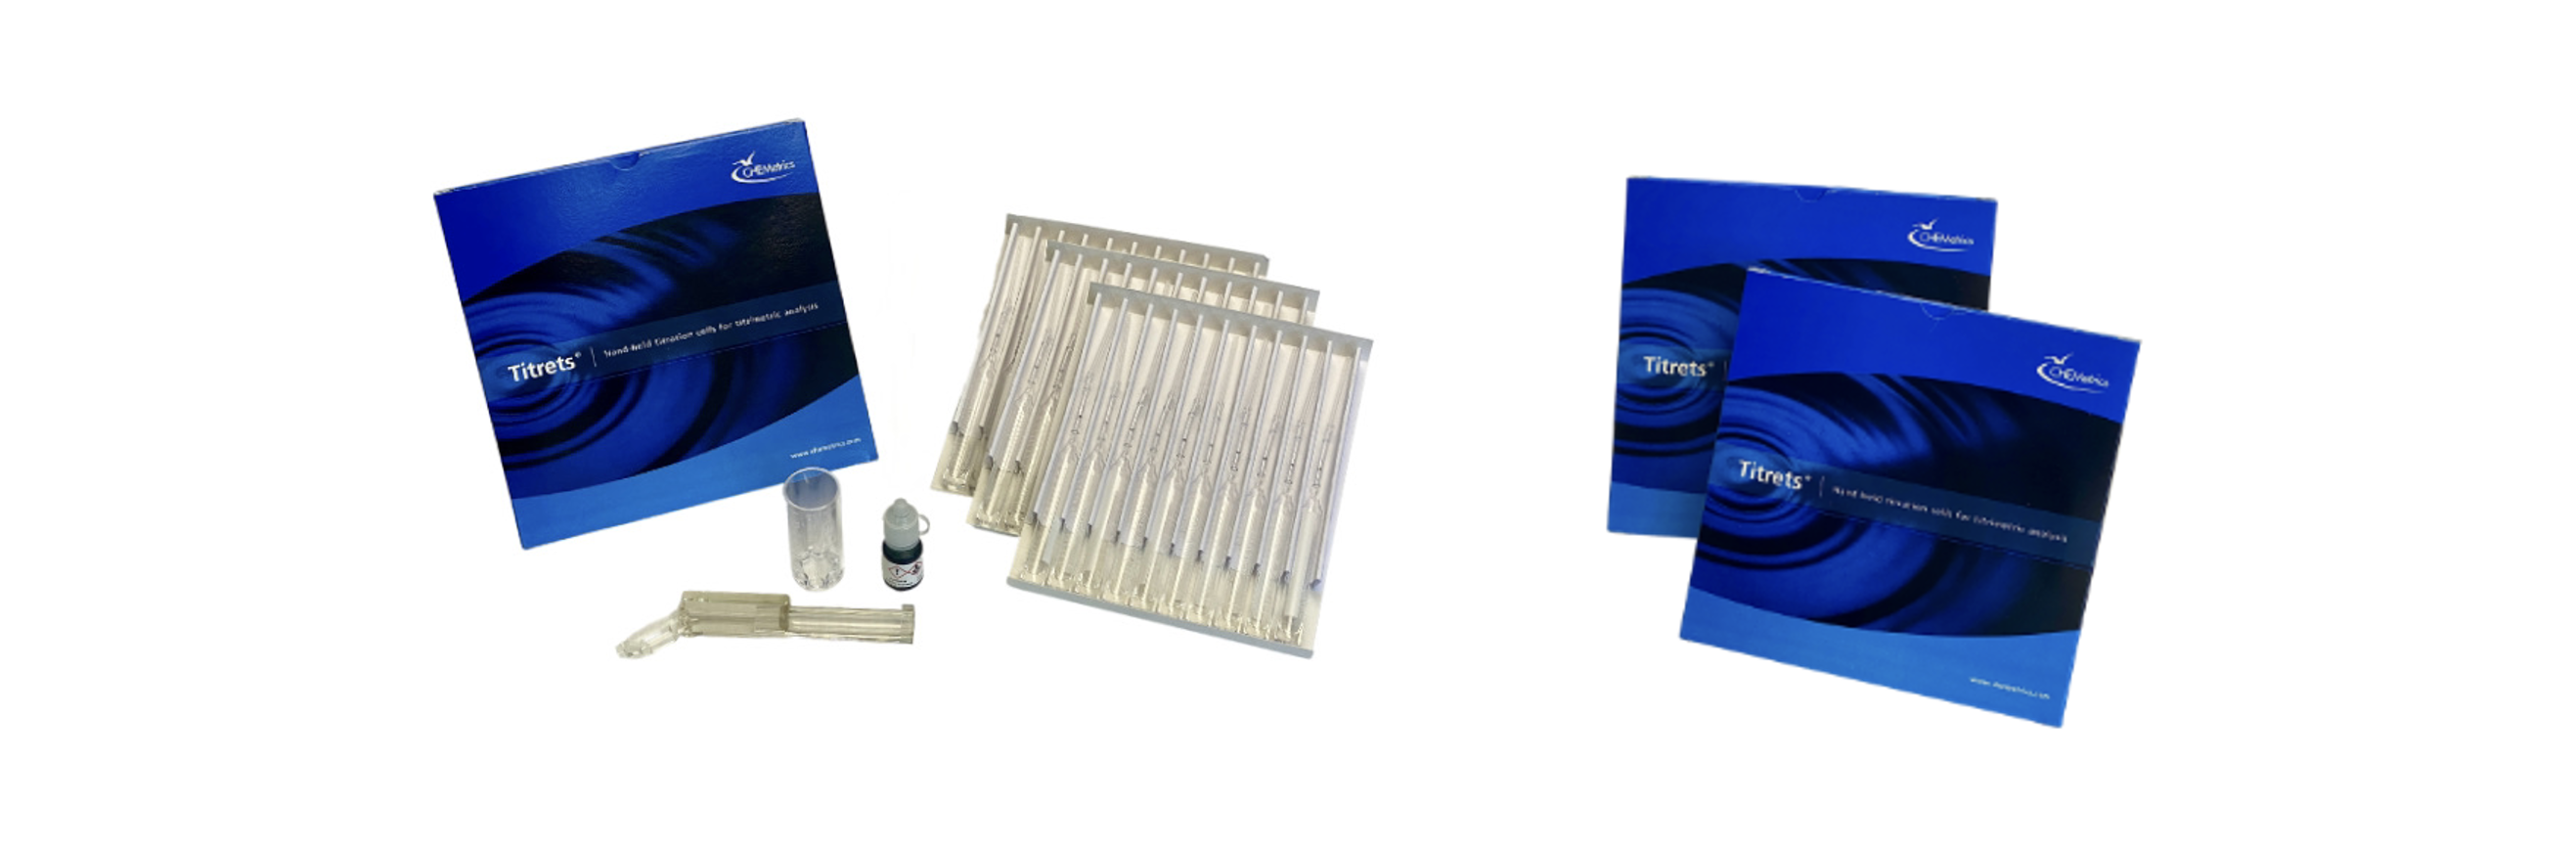 A banner image showing the Alkalinity Titrets Kit packaging and contents